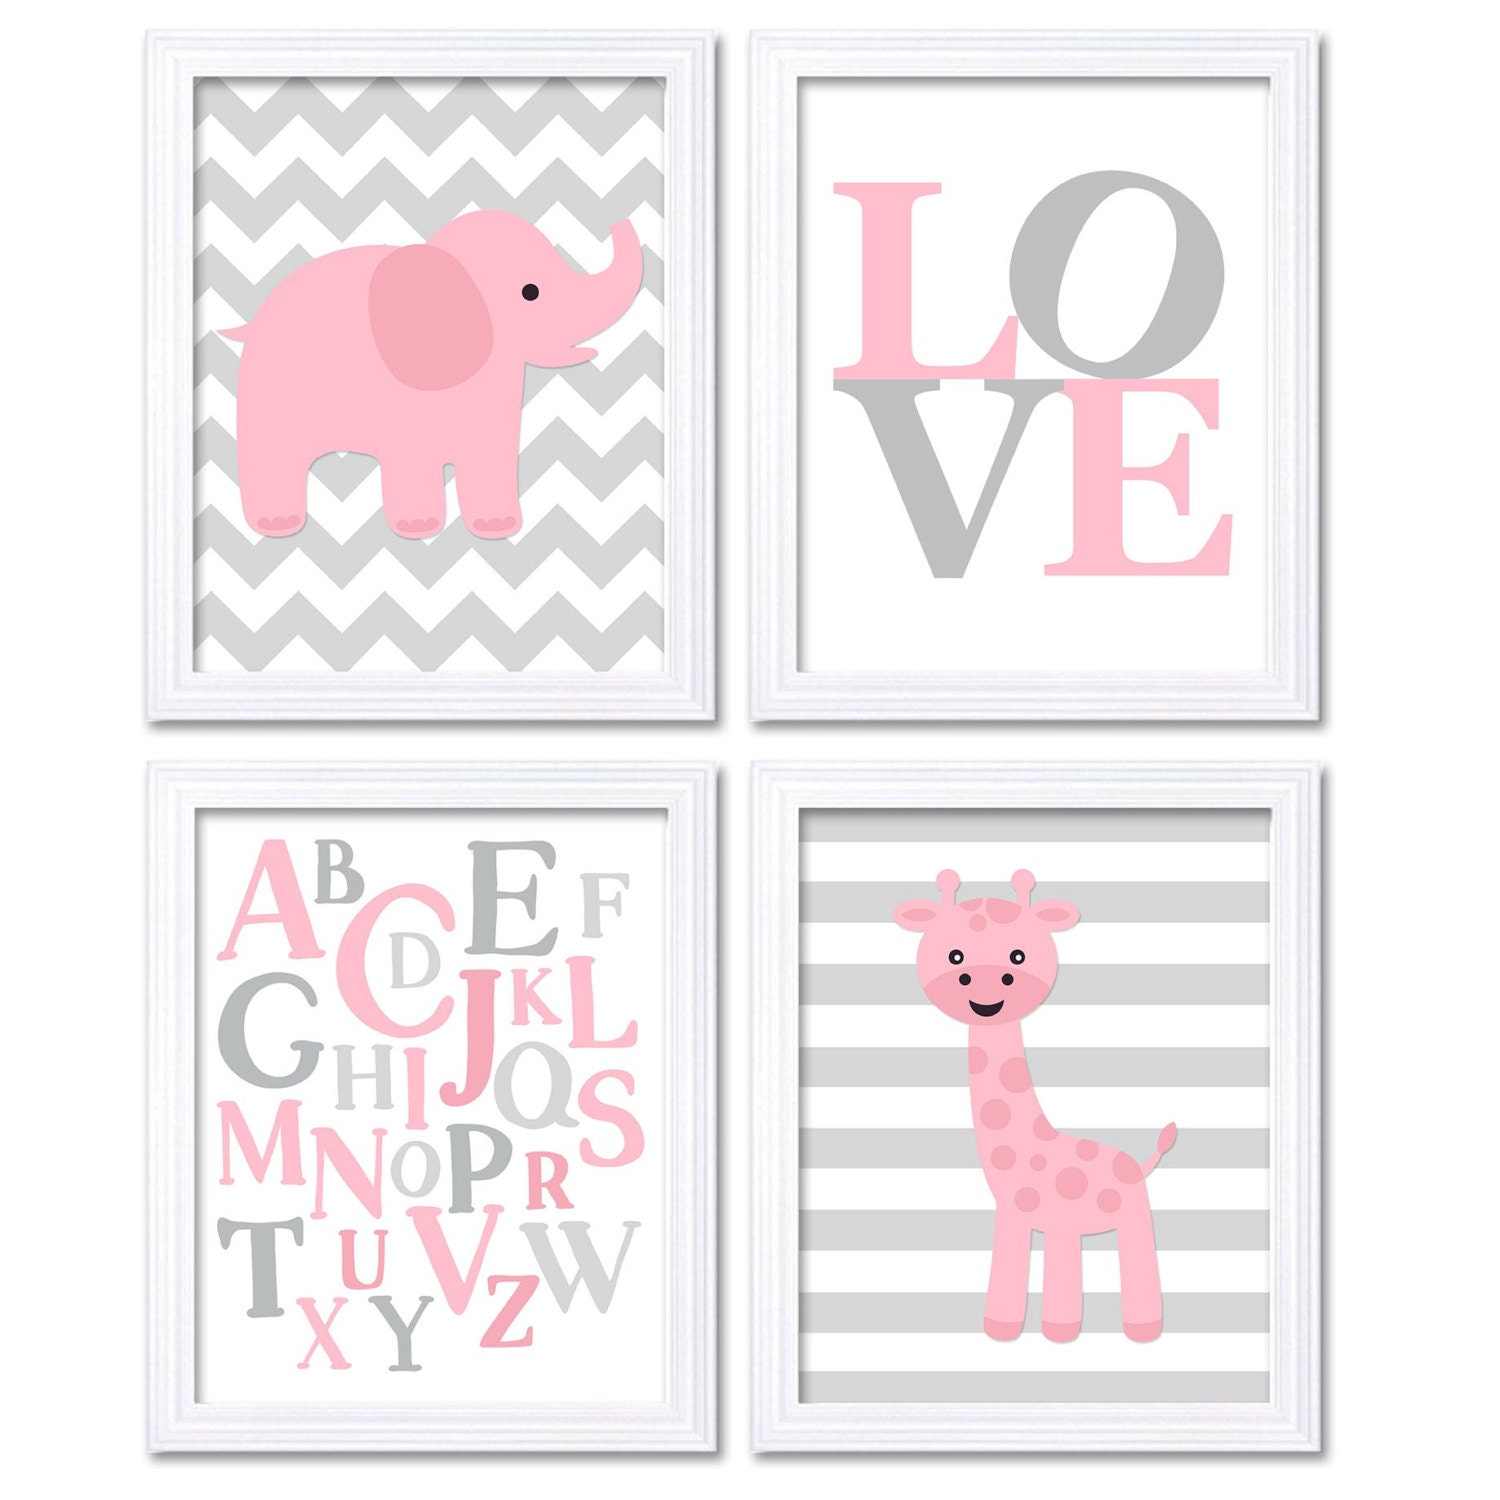 Elephant Nursery Art Giraffe Wall Decor Alphabet ABC Set of 4 Prints LOVE Baby Pink Grey Child Kids